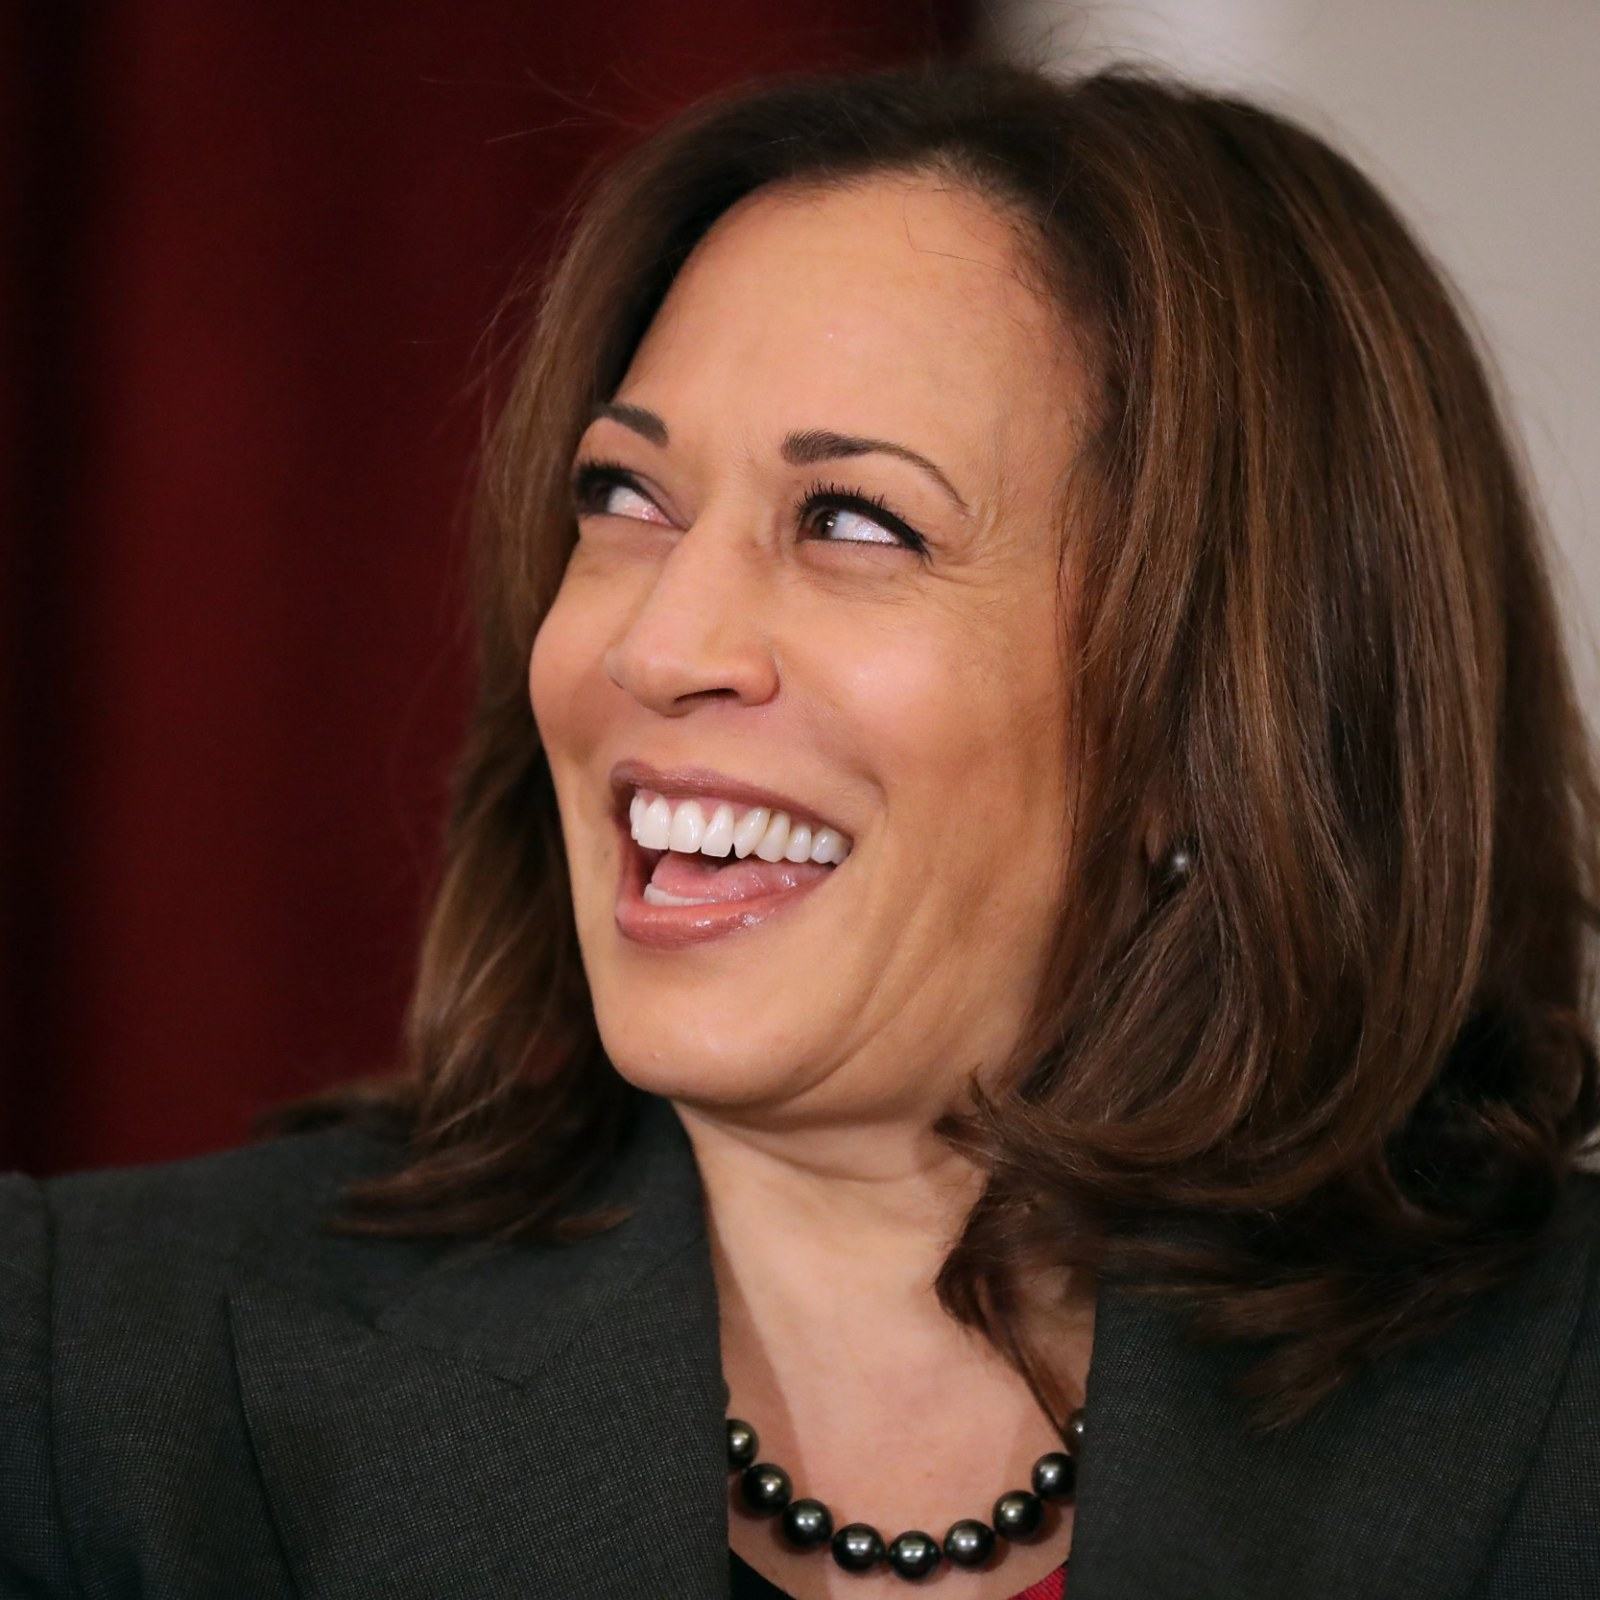 Kamala Harris Dances To Cardi B While Preparing To Give Her Speech